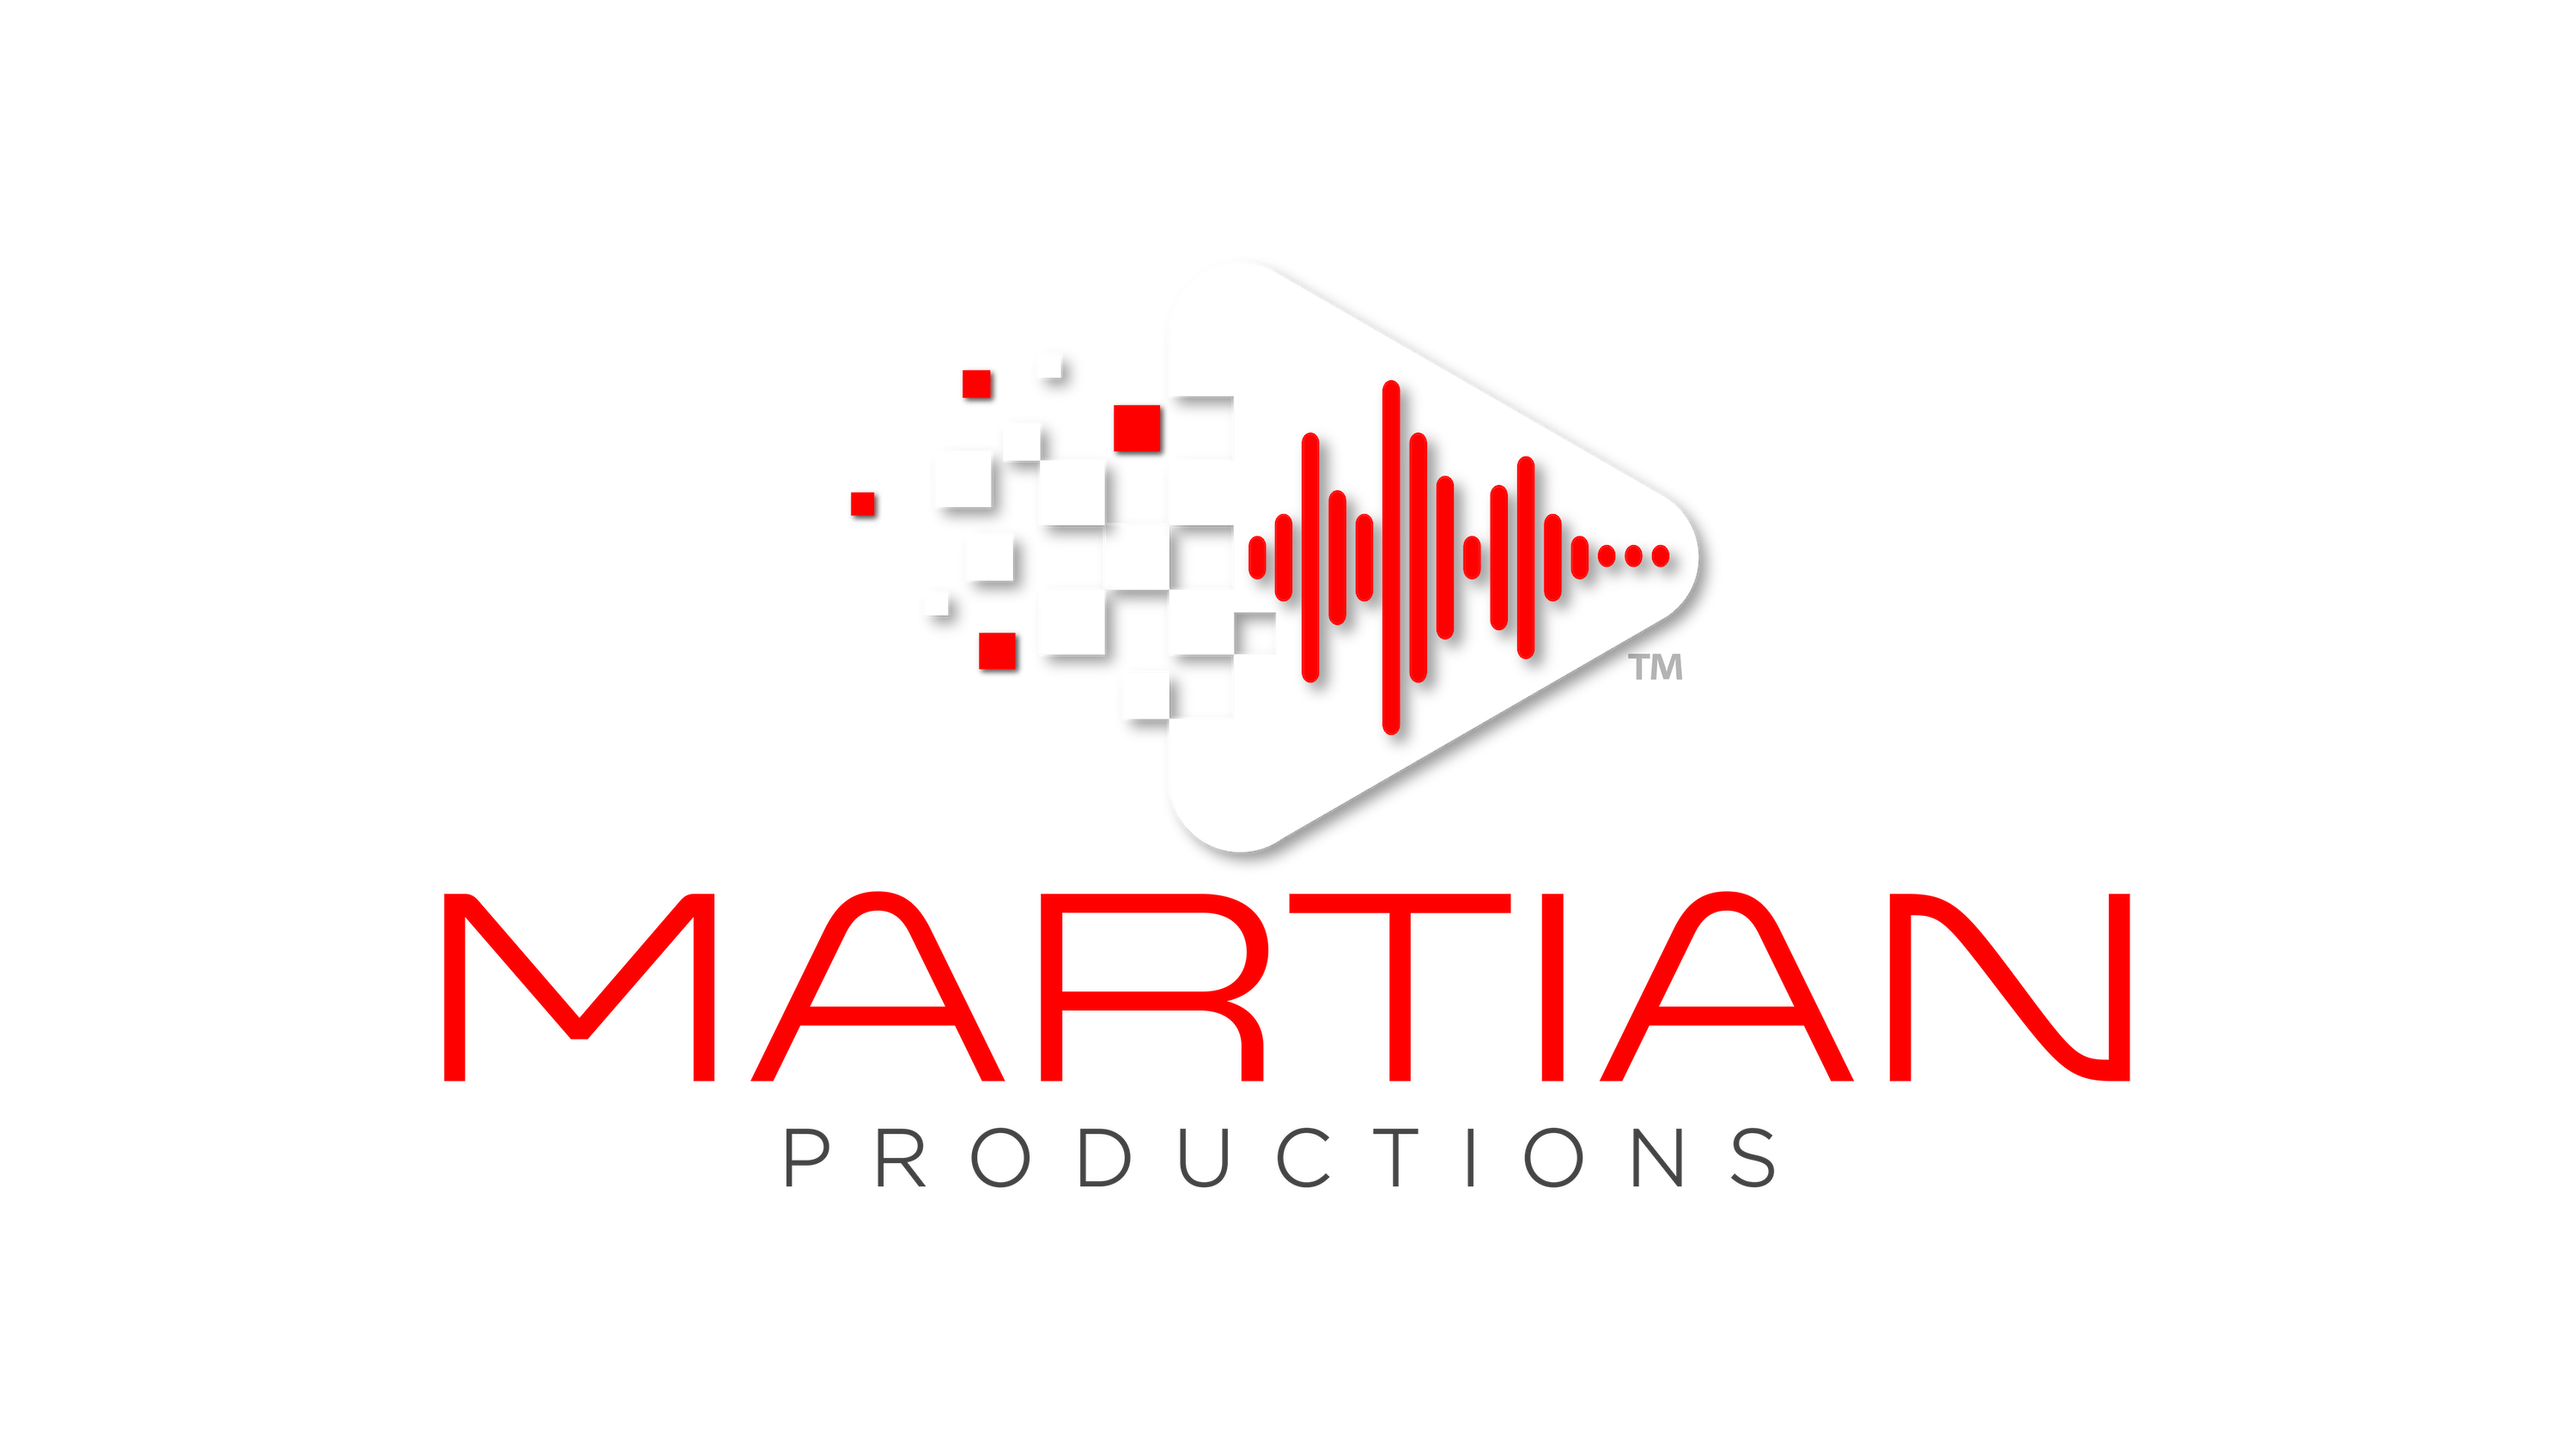 Martian Productions